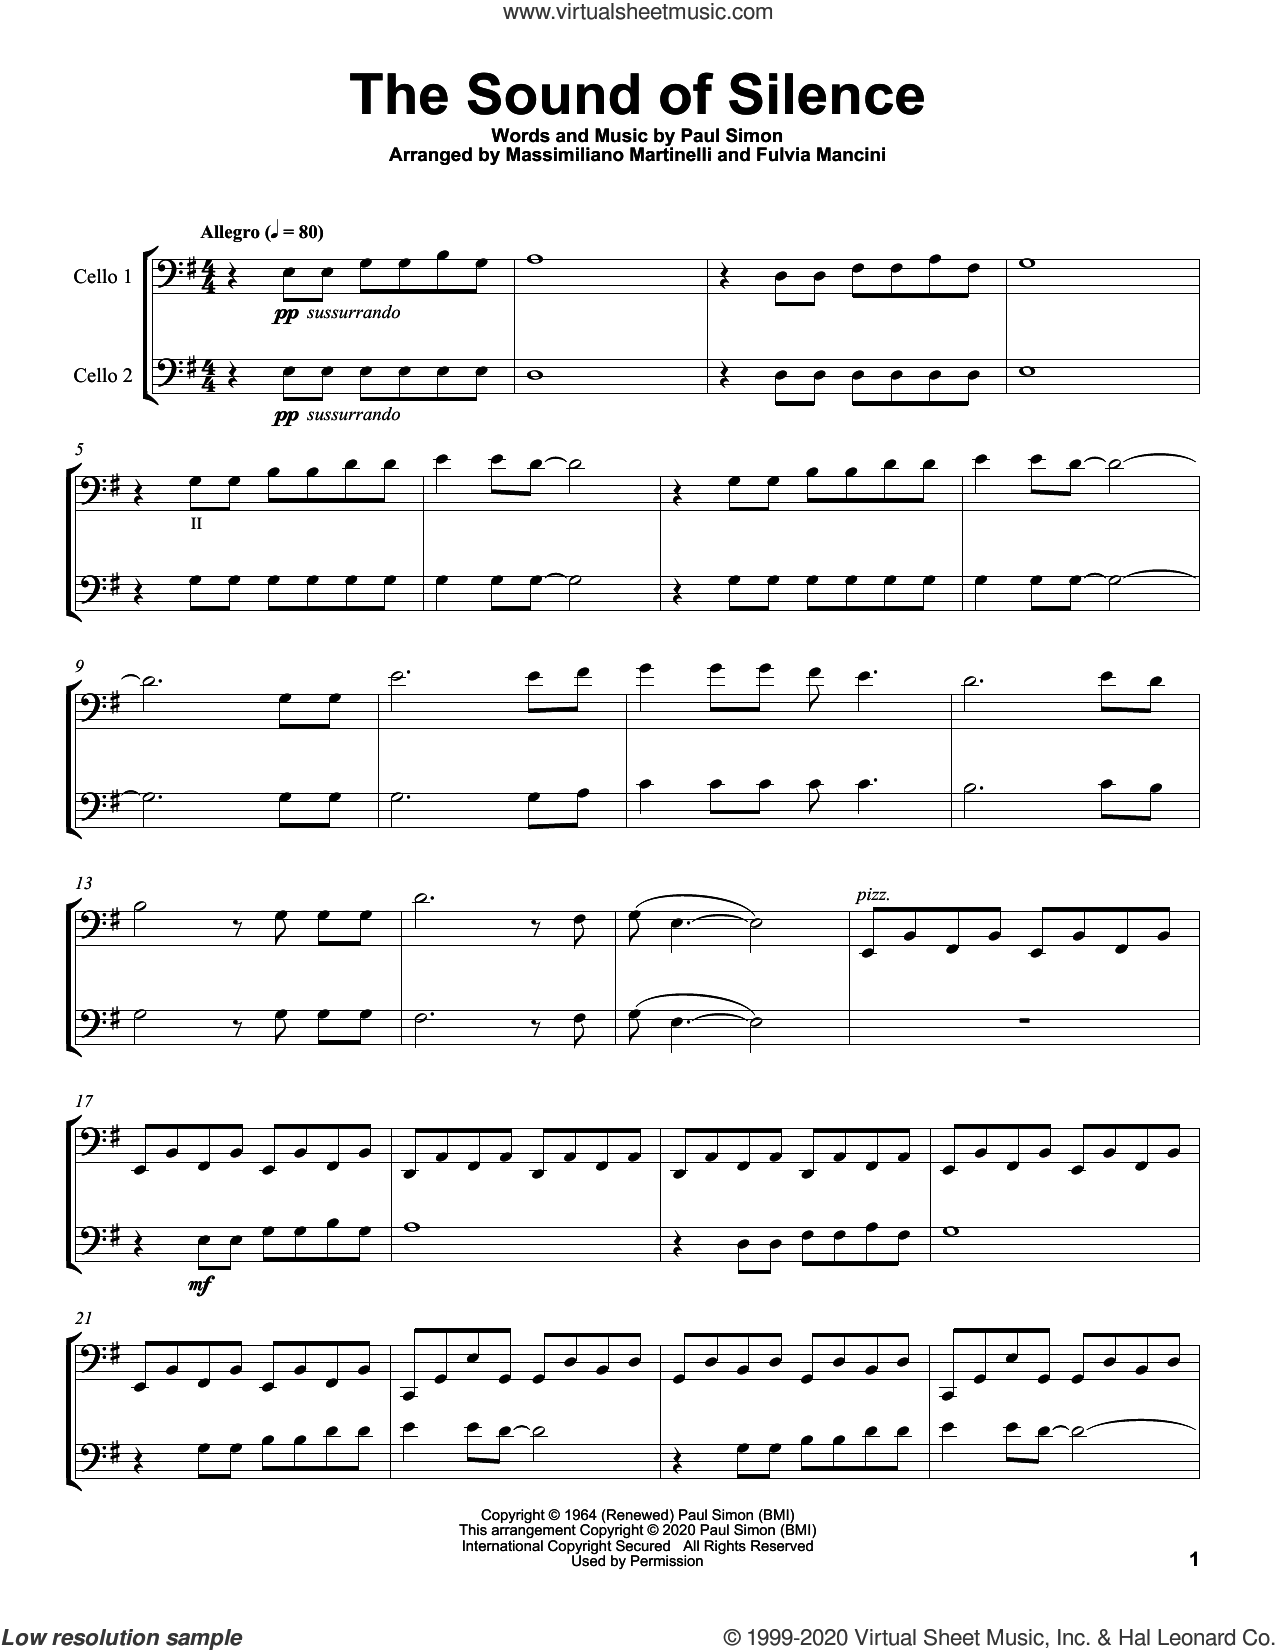 The Sound Of Silence sheet music for two cellos (duet, duets) by Mr. & Mrs. Cello, Simon & Garfunkel and Paul Simon, intermediate skill level